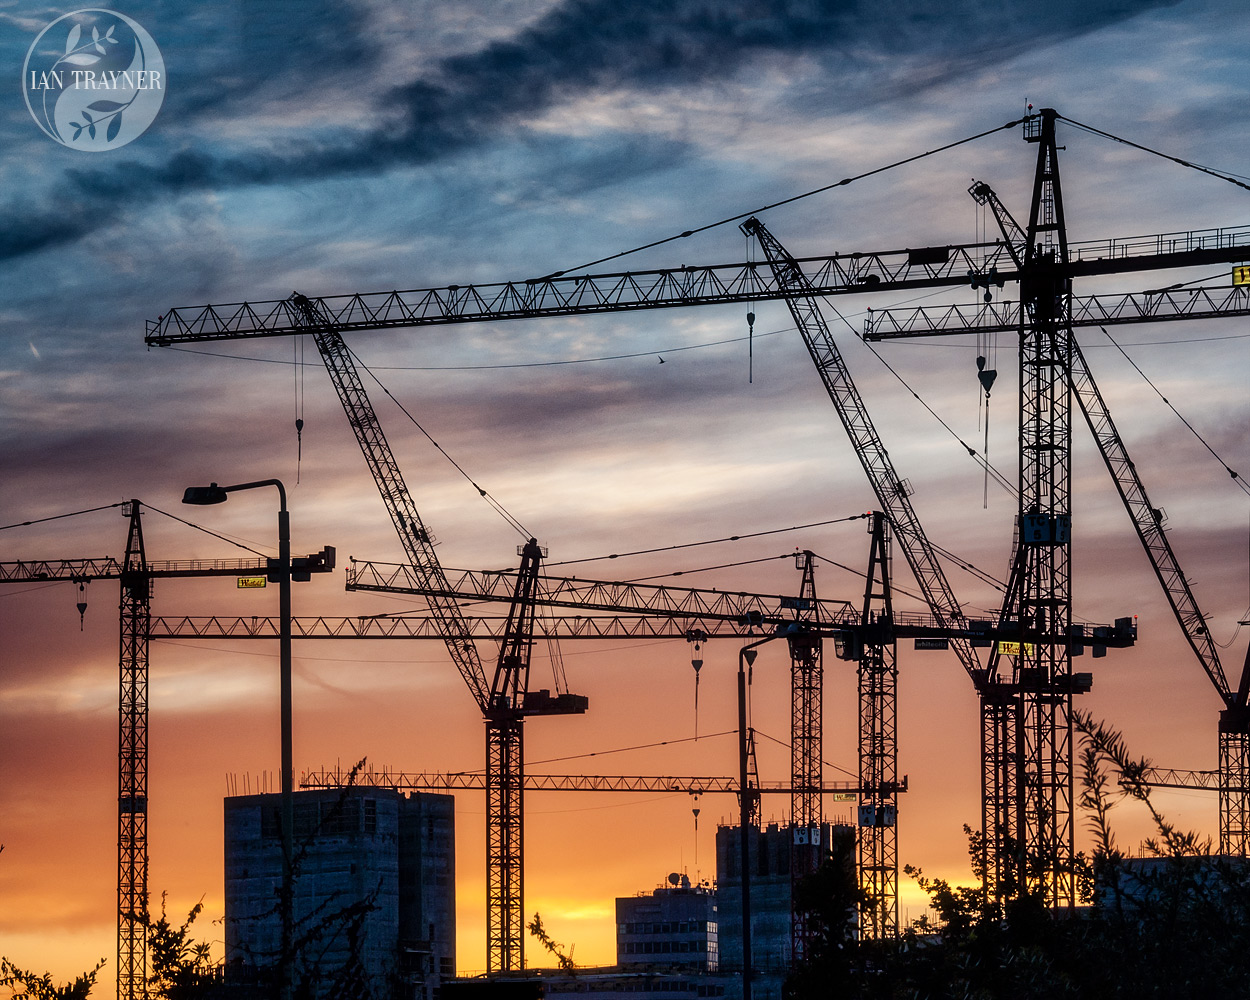 Cranes silhouetted against a stunning sunset sky looking towards Heathrow. Photo taken by Ian Trayner in 2007, during construction of the Westfield London shopping centre.